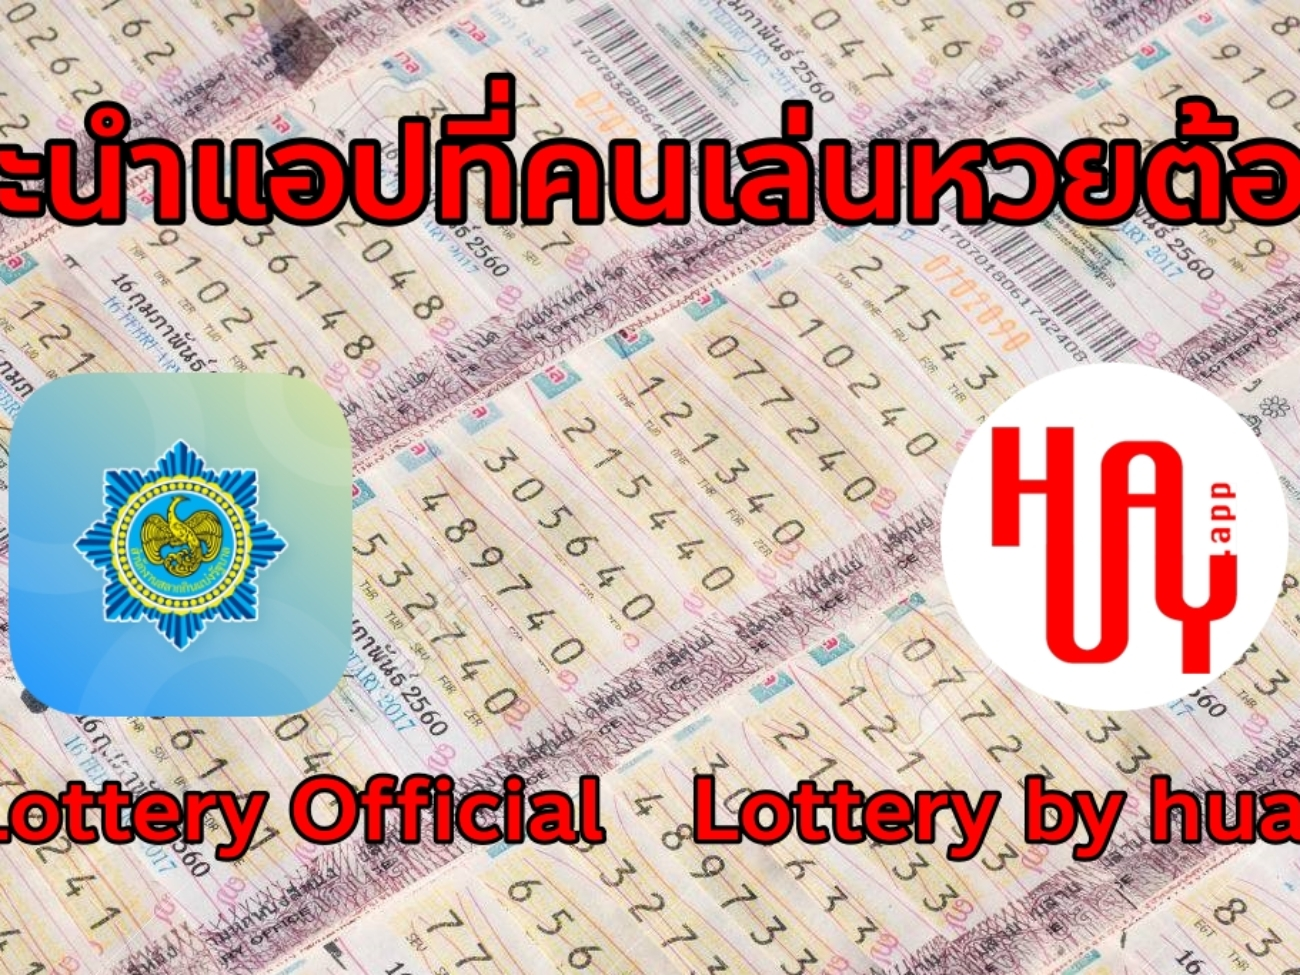 Thai Lottery Ticket in Market Stall